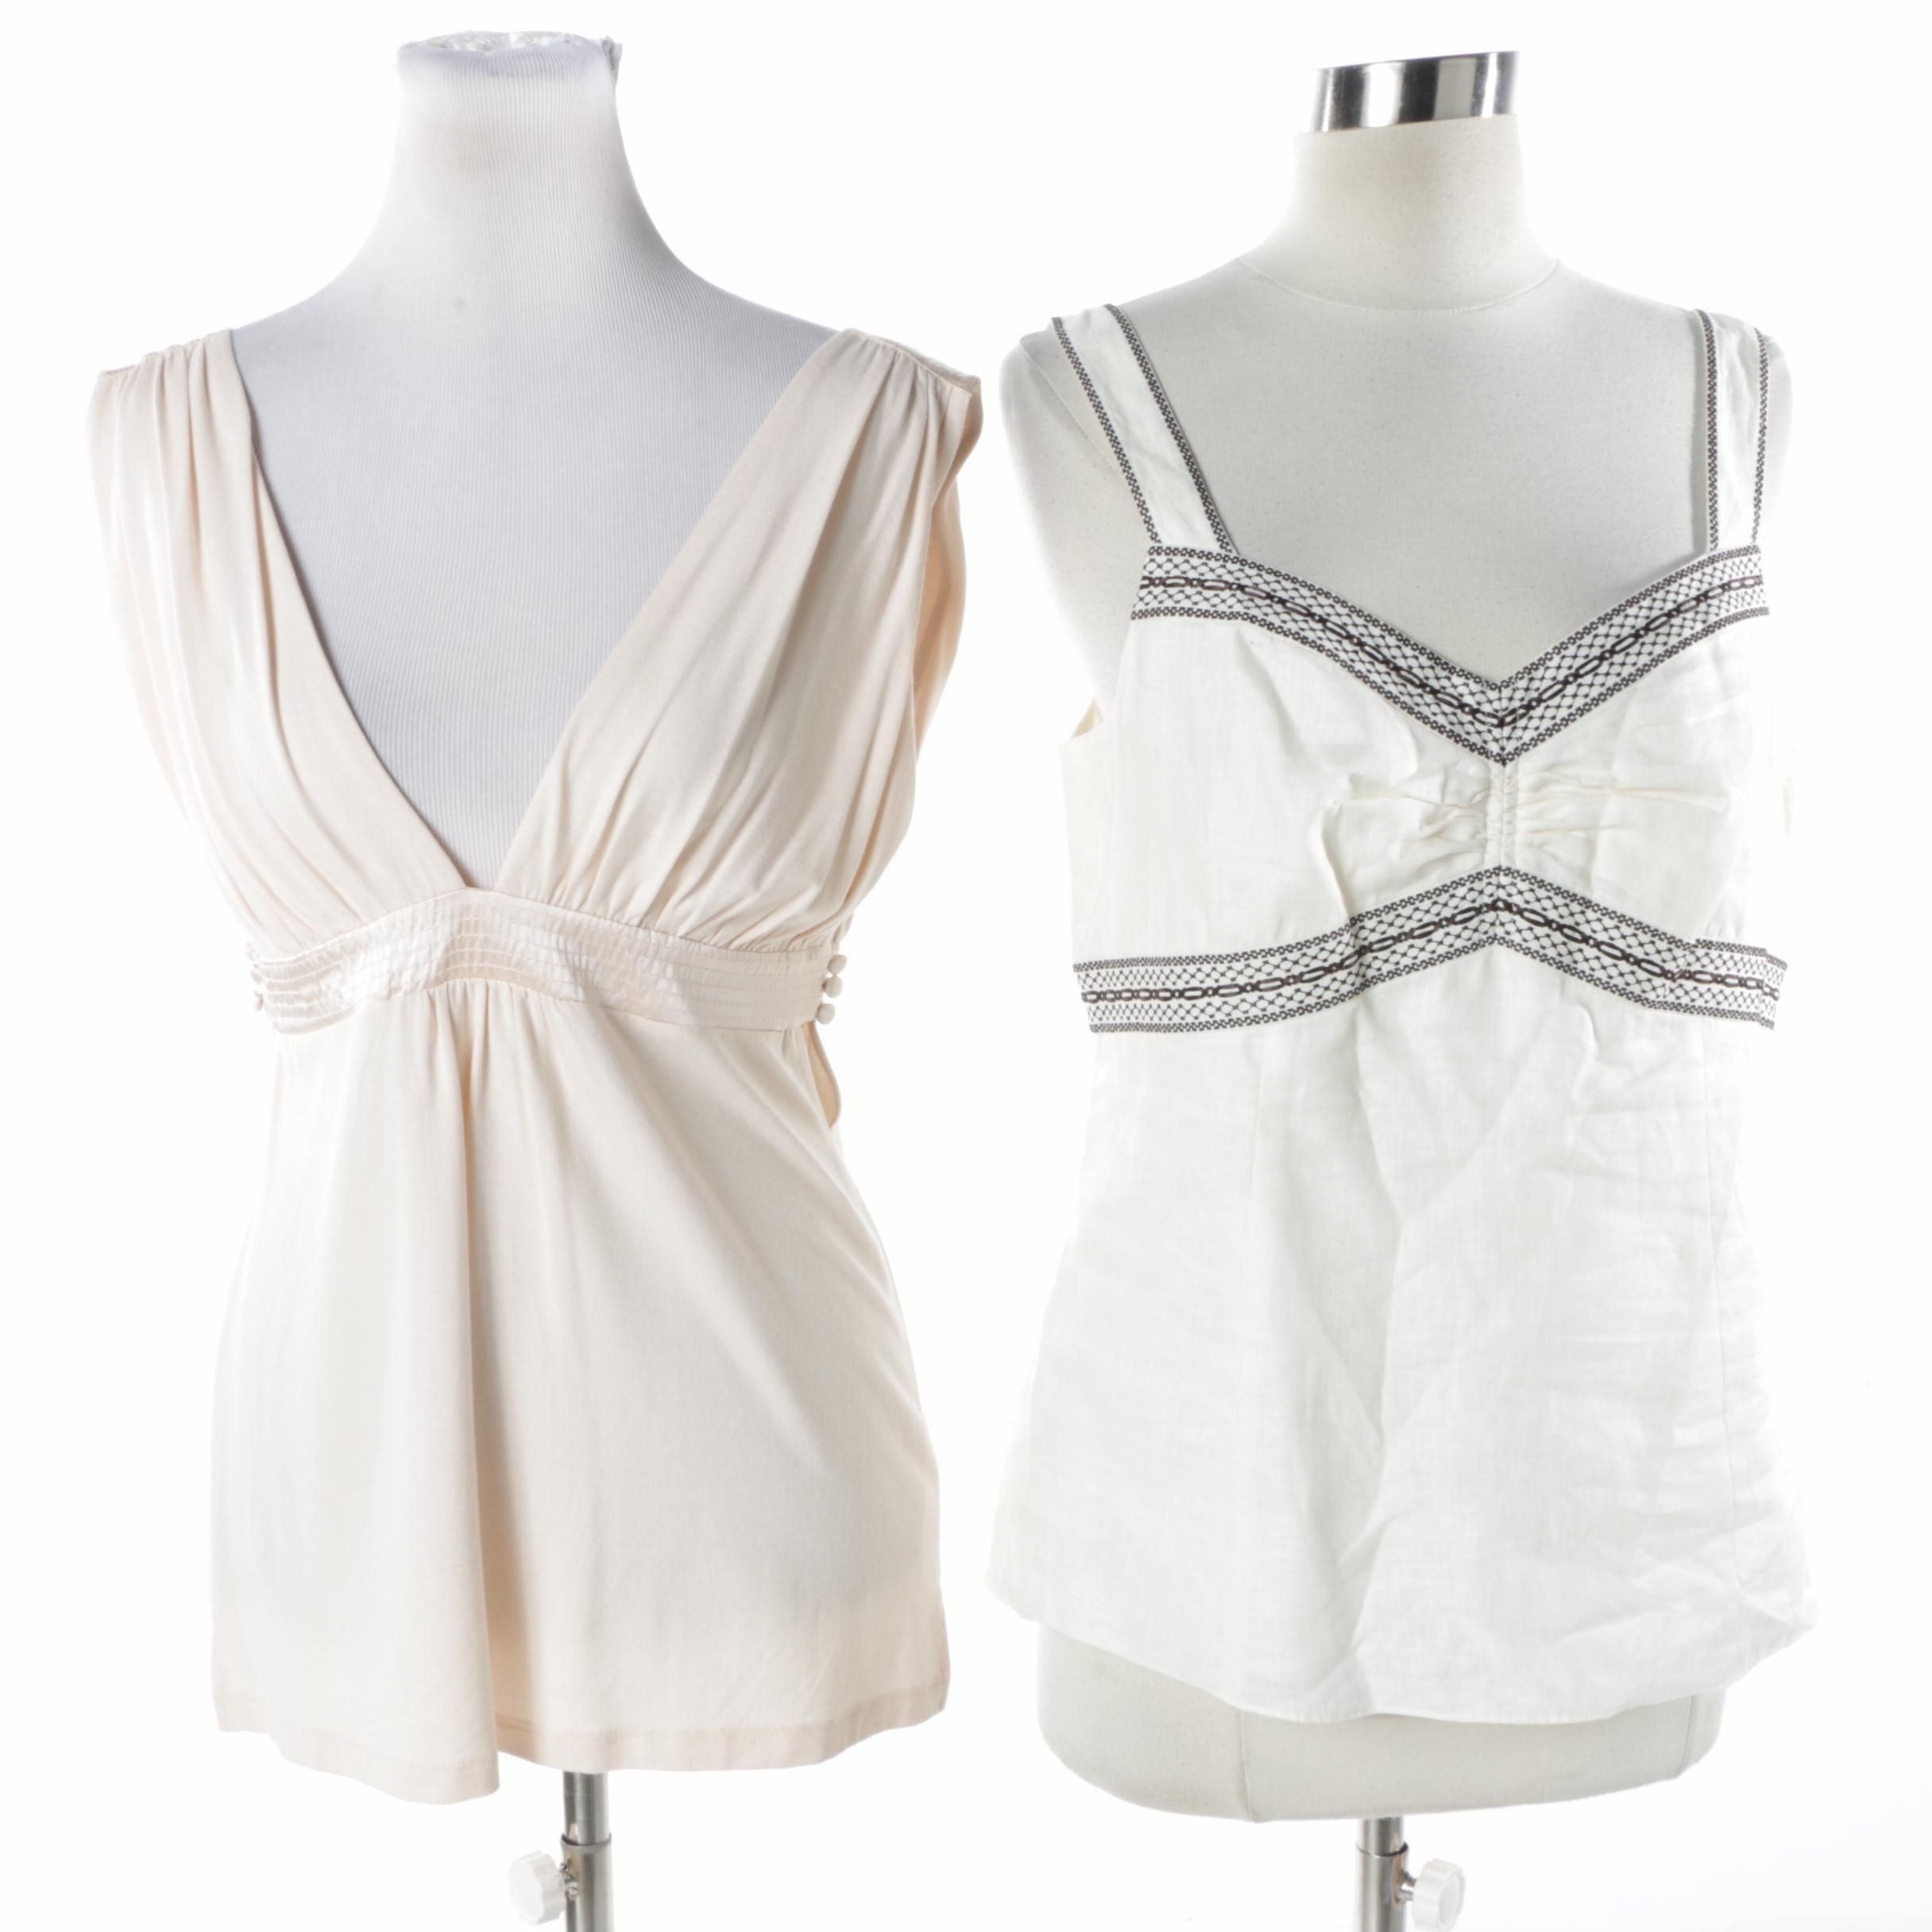 Bebe and Ann Taylor Sleeveless Tops